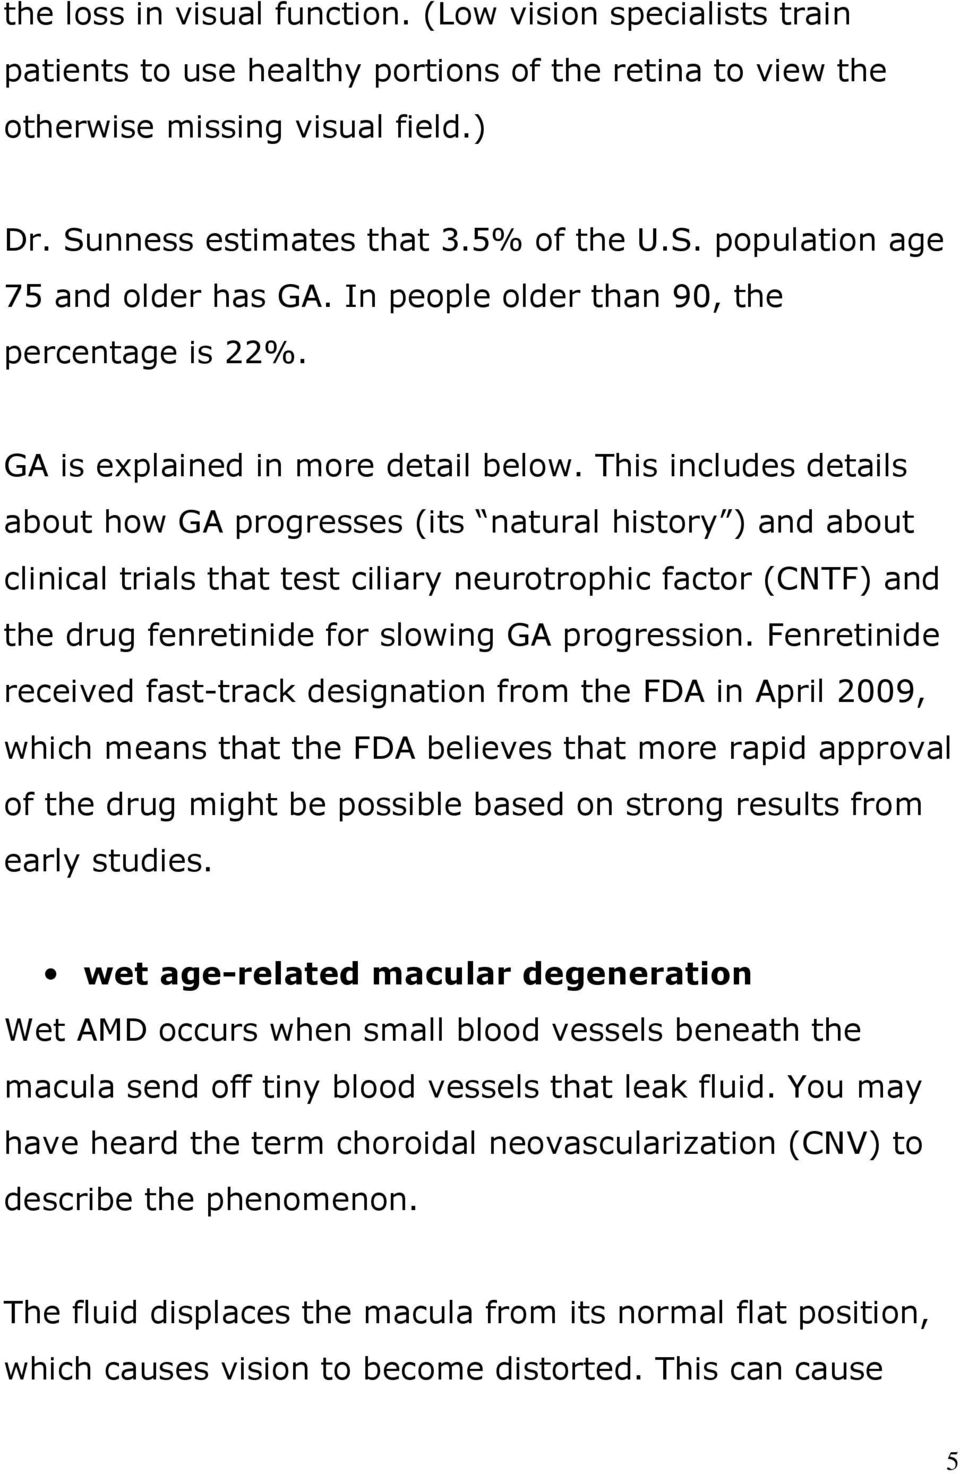 This includes details about how GA progresses (its natural history ) and about clinical trials that test ciliary neurotrophic factor (CNTF) and the drug fenretinide for slowing GA progression.